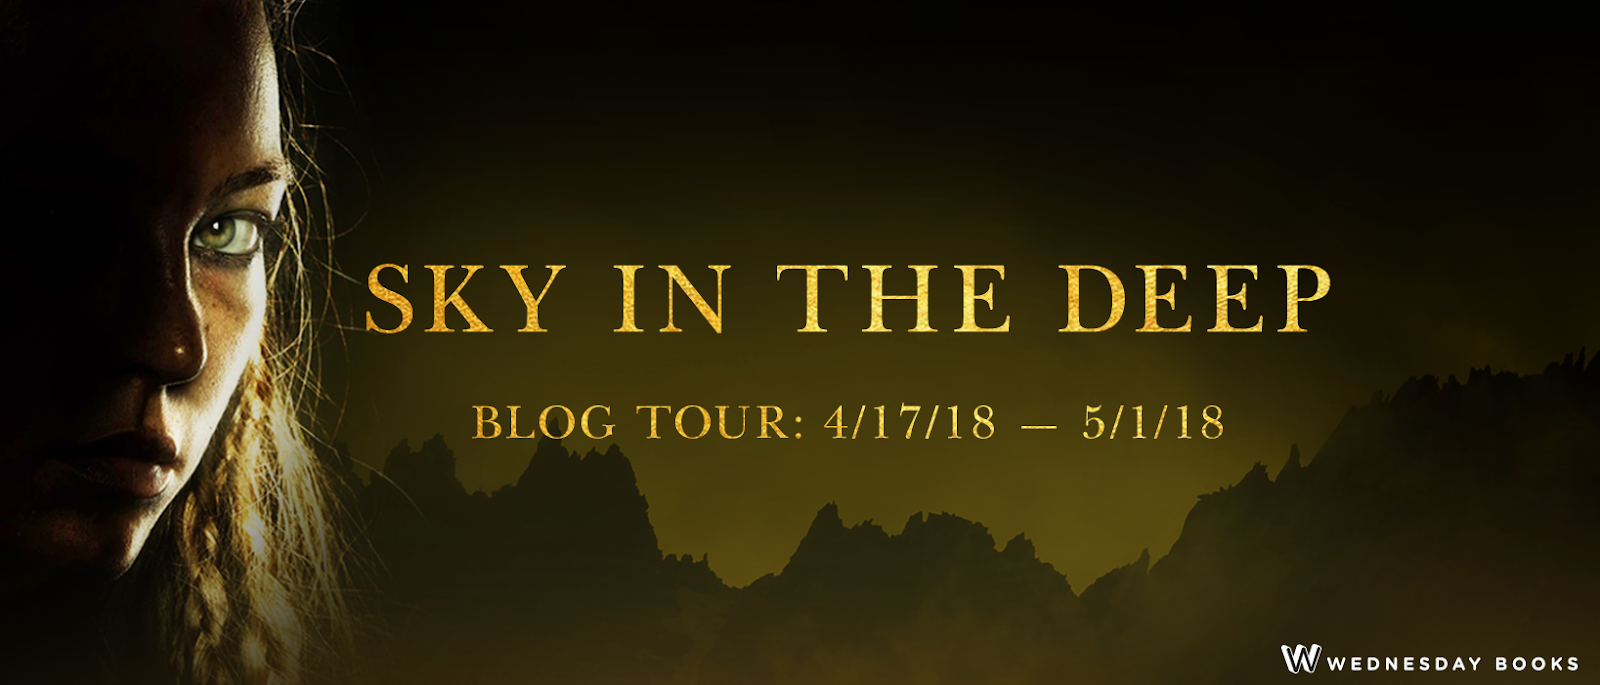 Mundie moms 04012018 05012018 welcome to the next stop in the sky in the deep blog tour hosted by wednesday books i am so thrilled to celebrate the recent release of adriennes debut fandeluxe Images